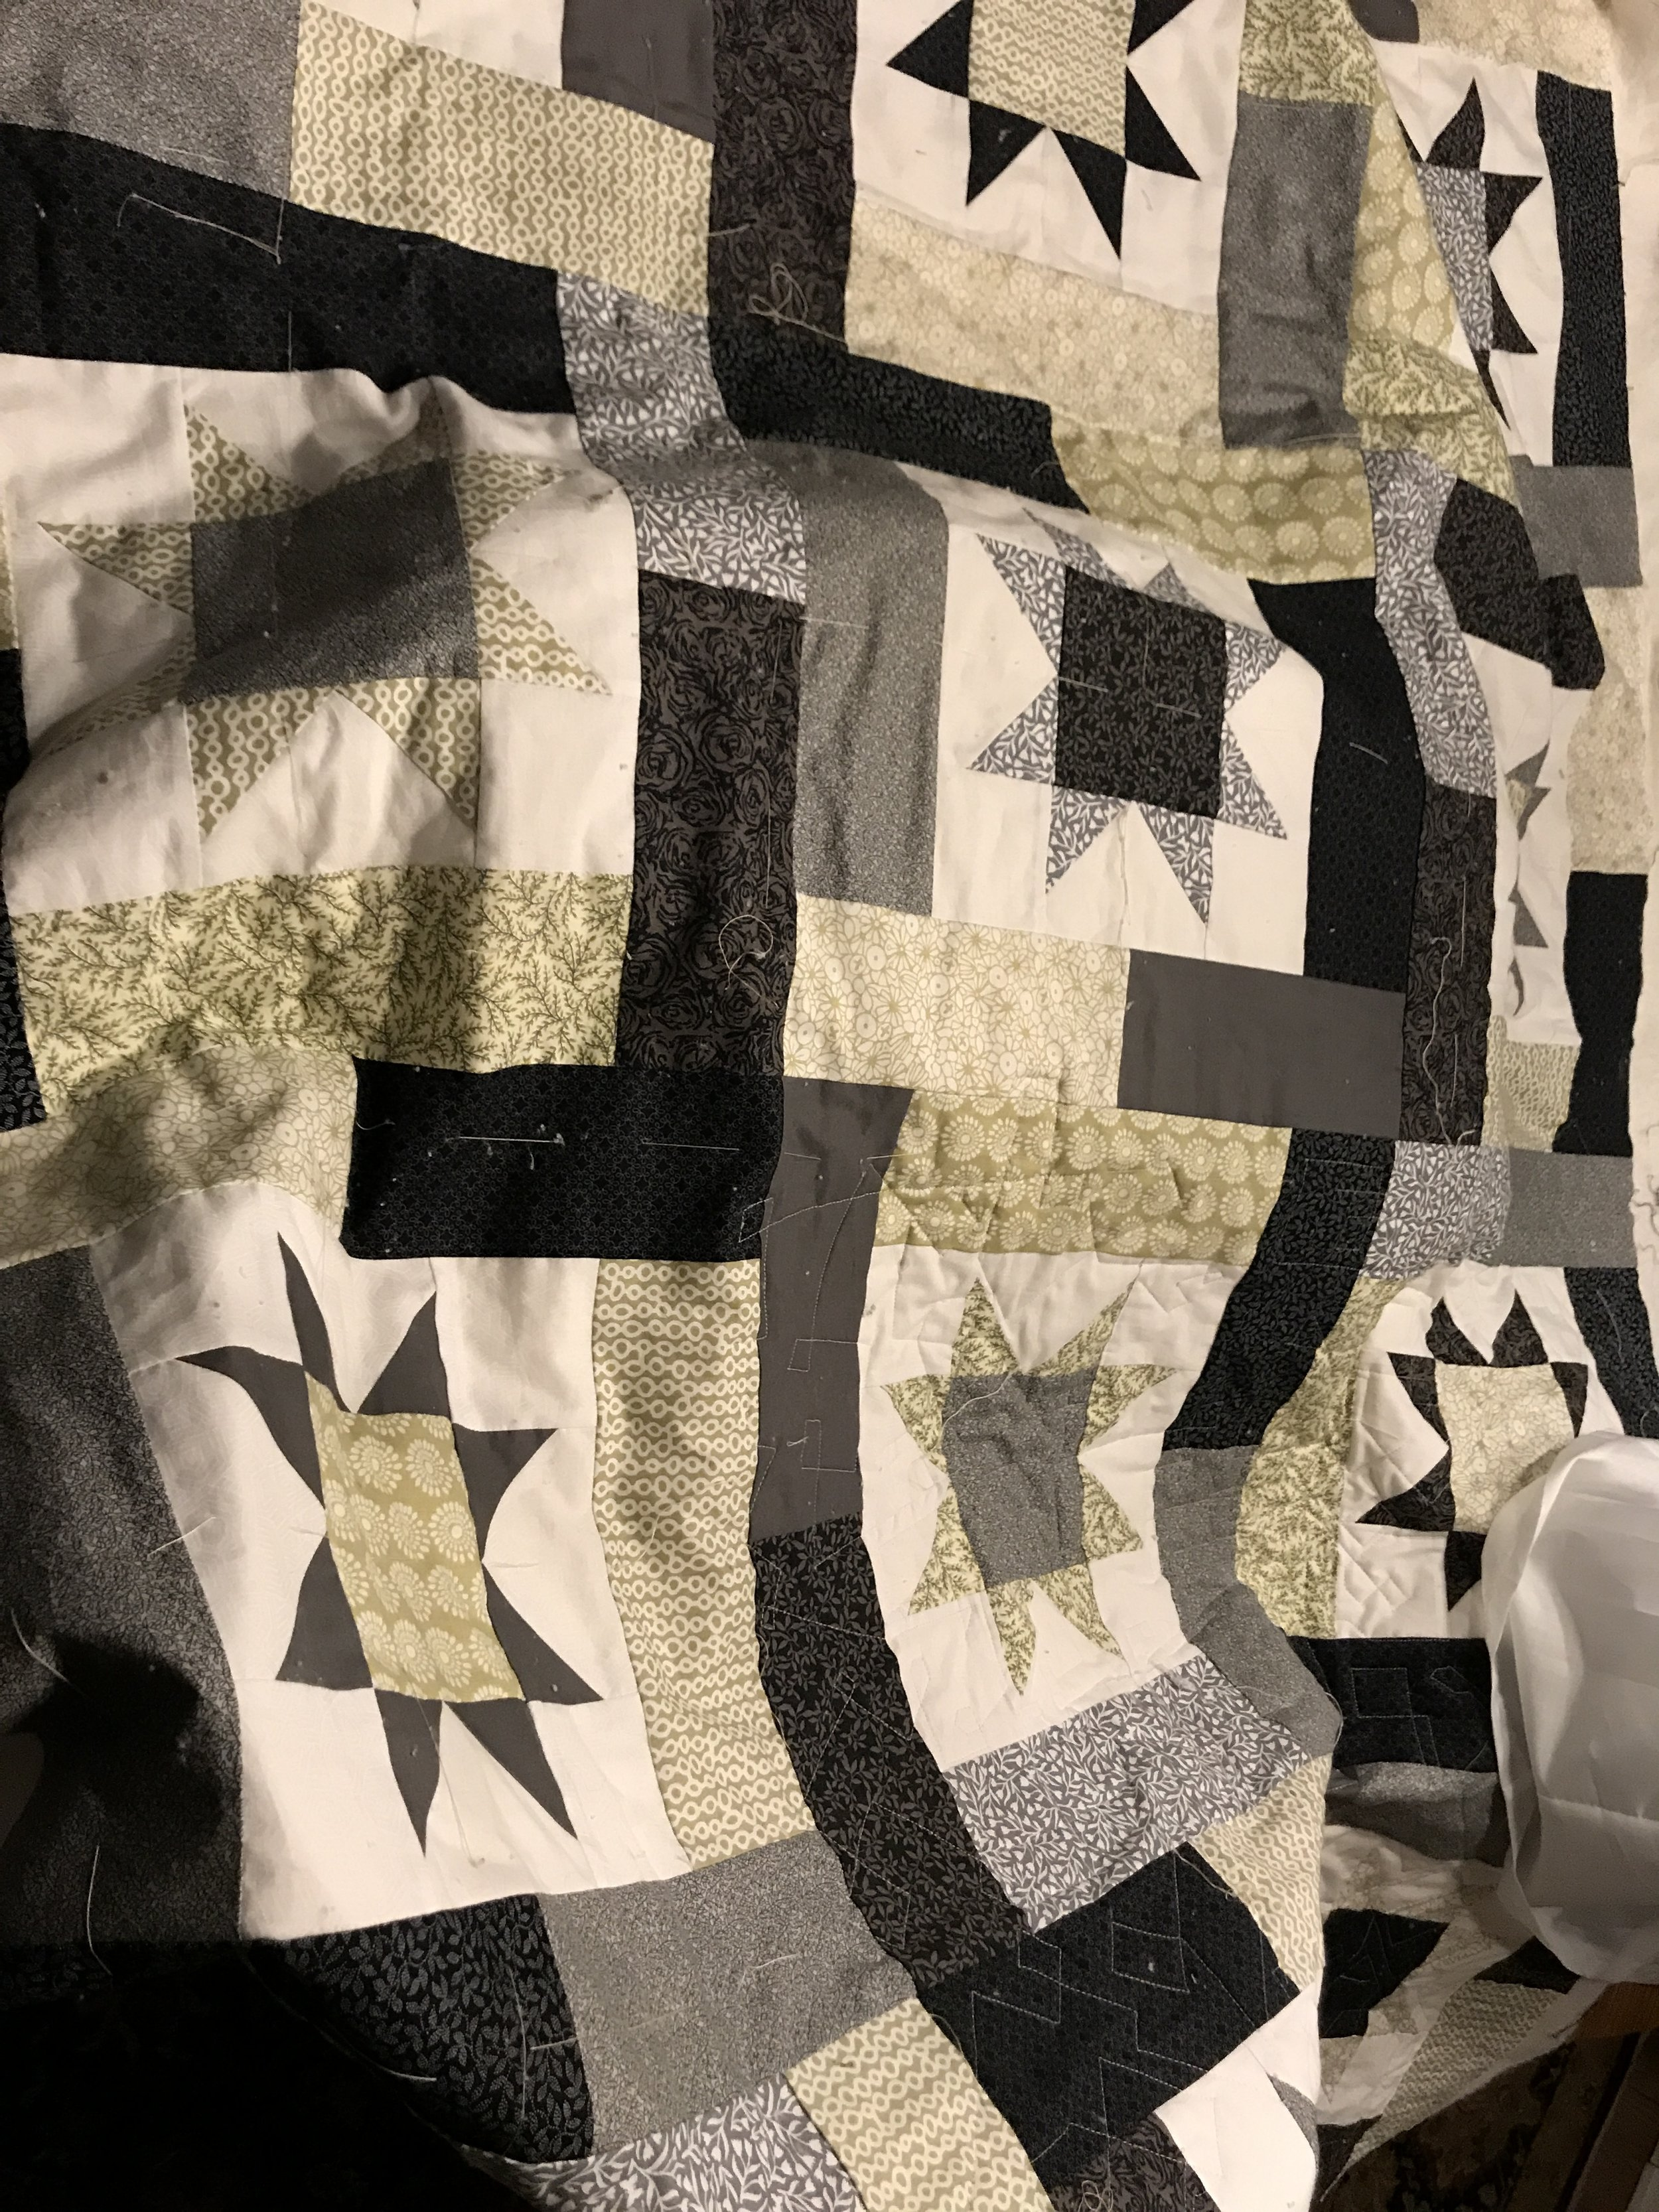 quilt top in progress.JPG